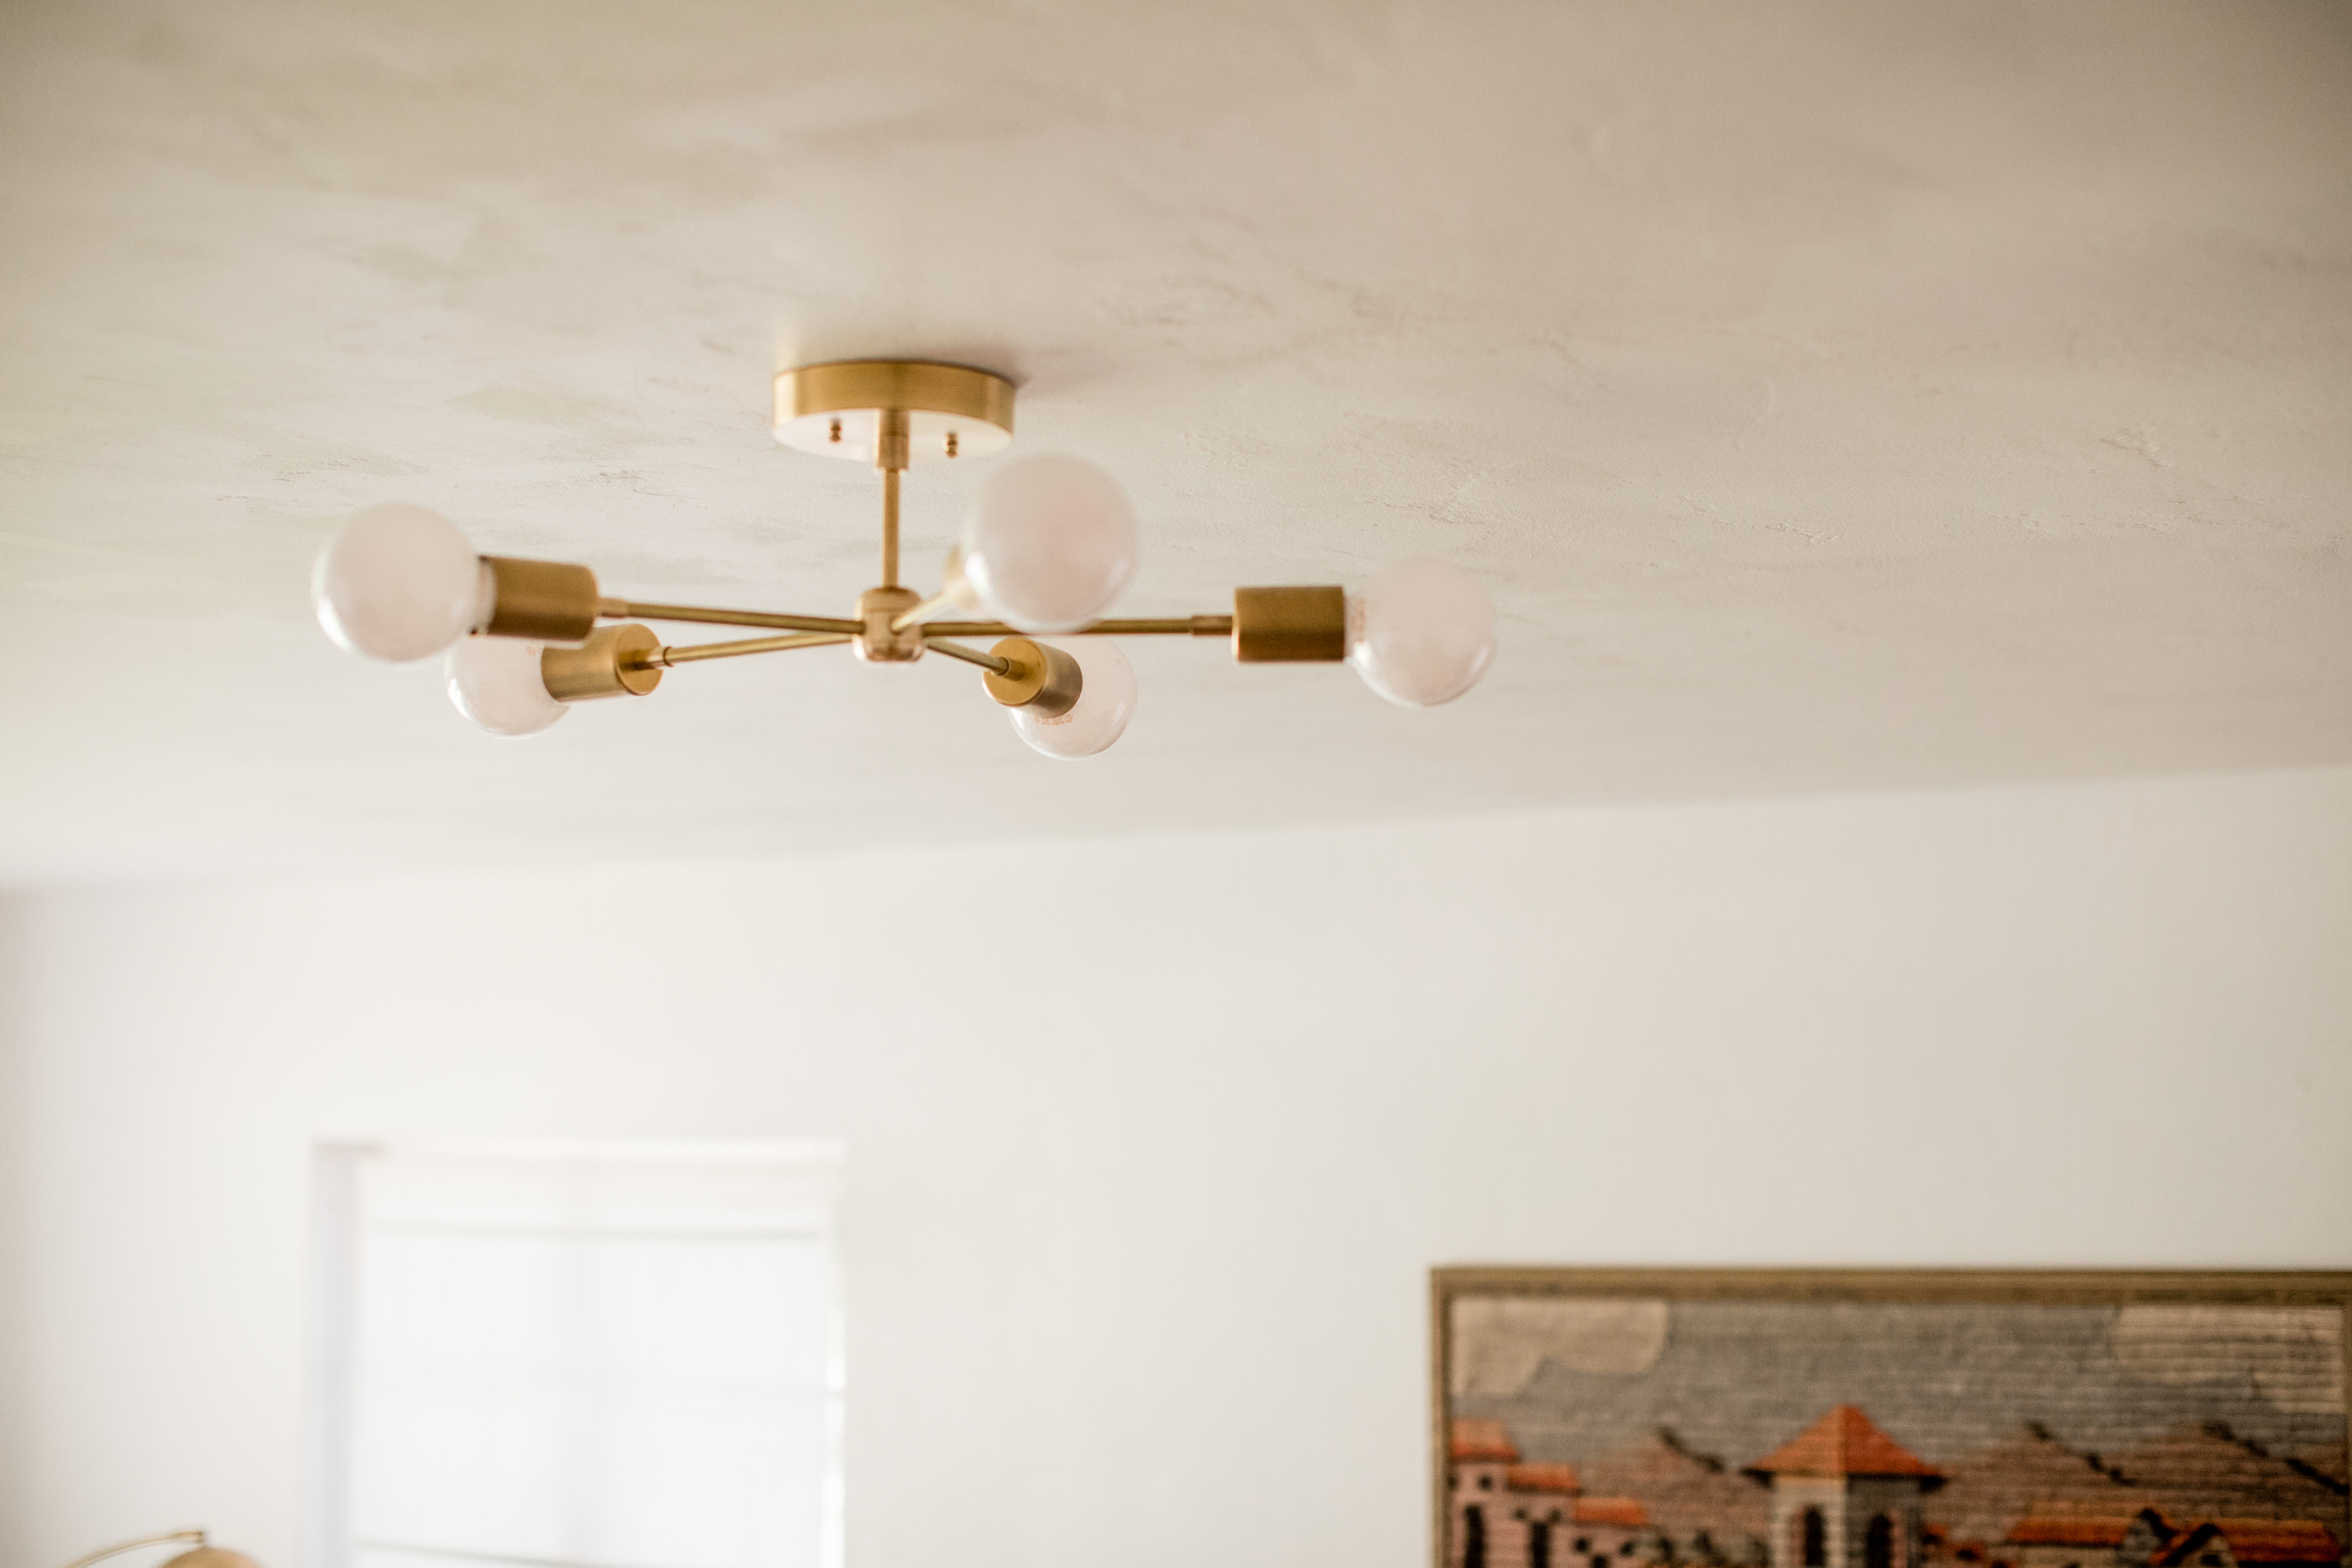 gold ceiling light fixture with white globe lamps